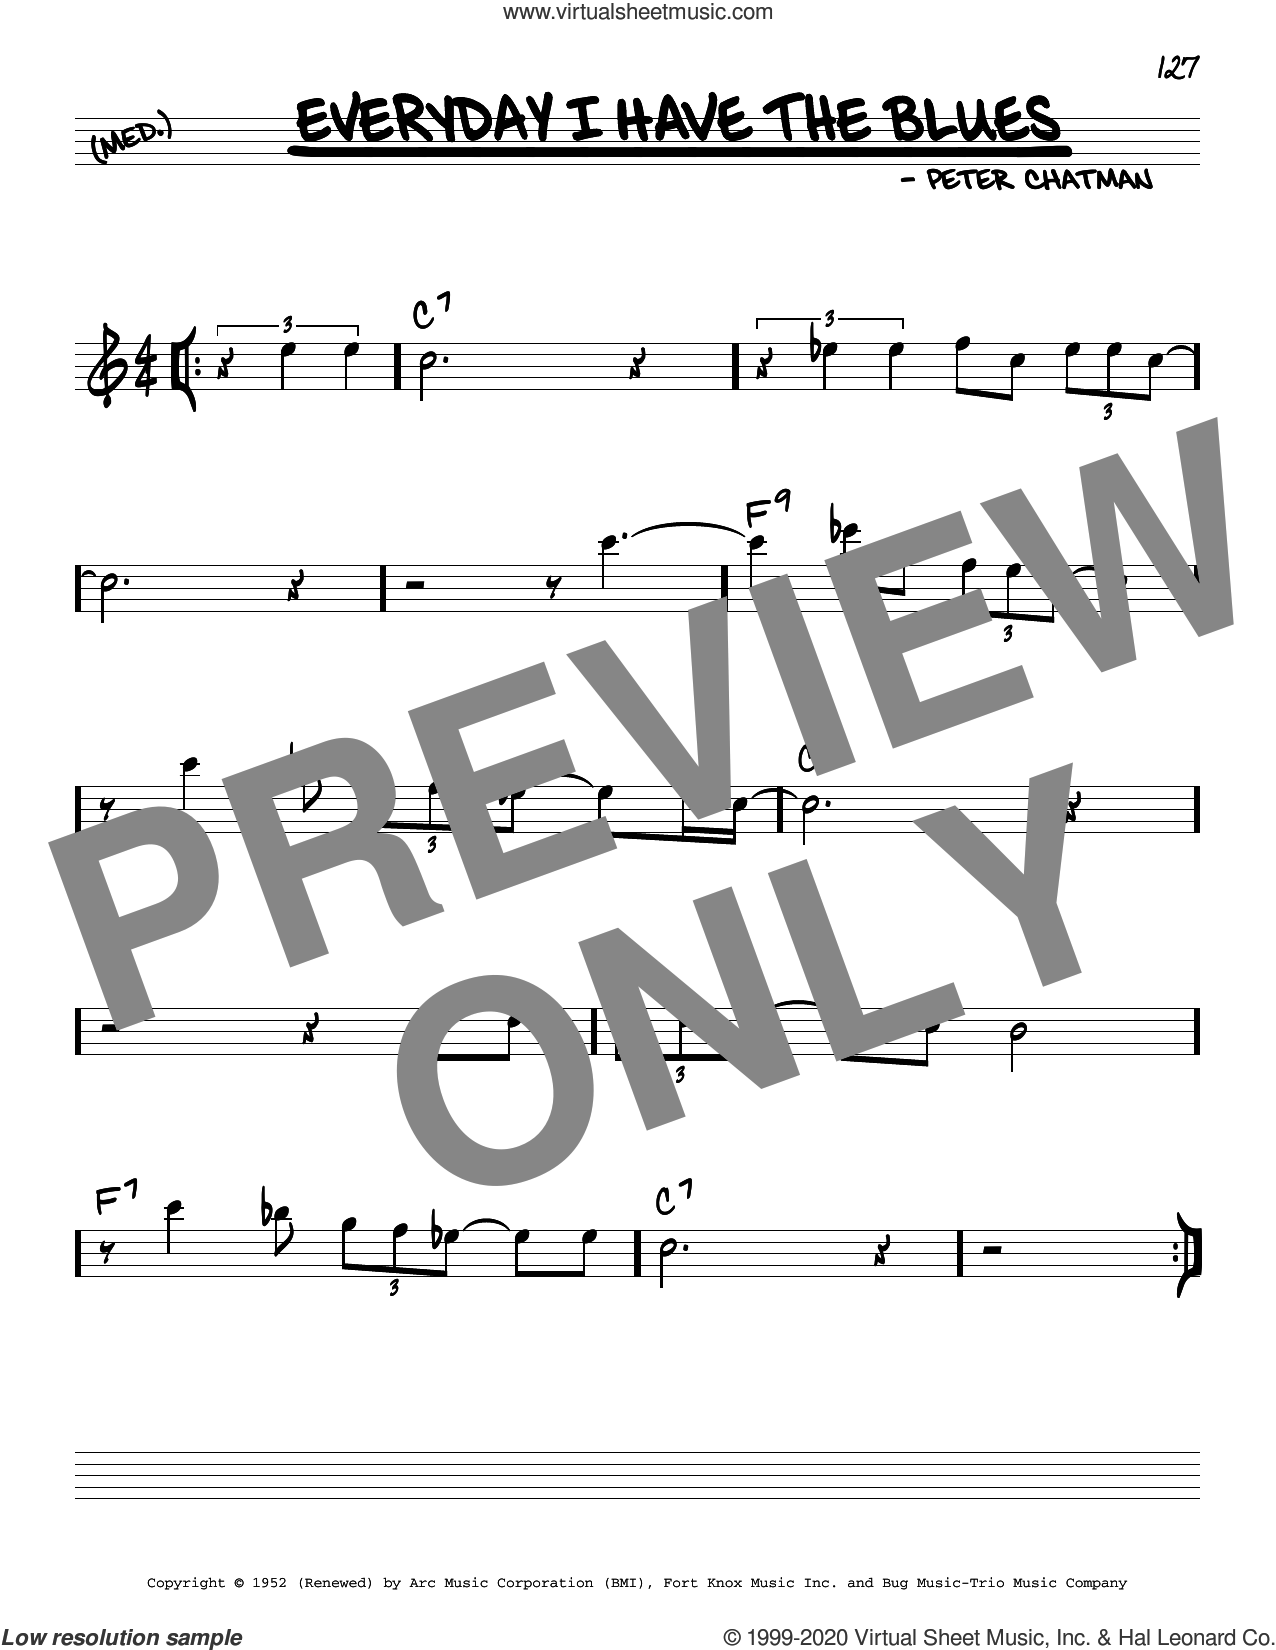 Every Day I Have The Blues sheet music for voice and other instruments (real book) by B.B. King and Peter Chatman, intermediate skill level